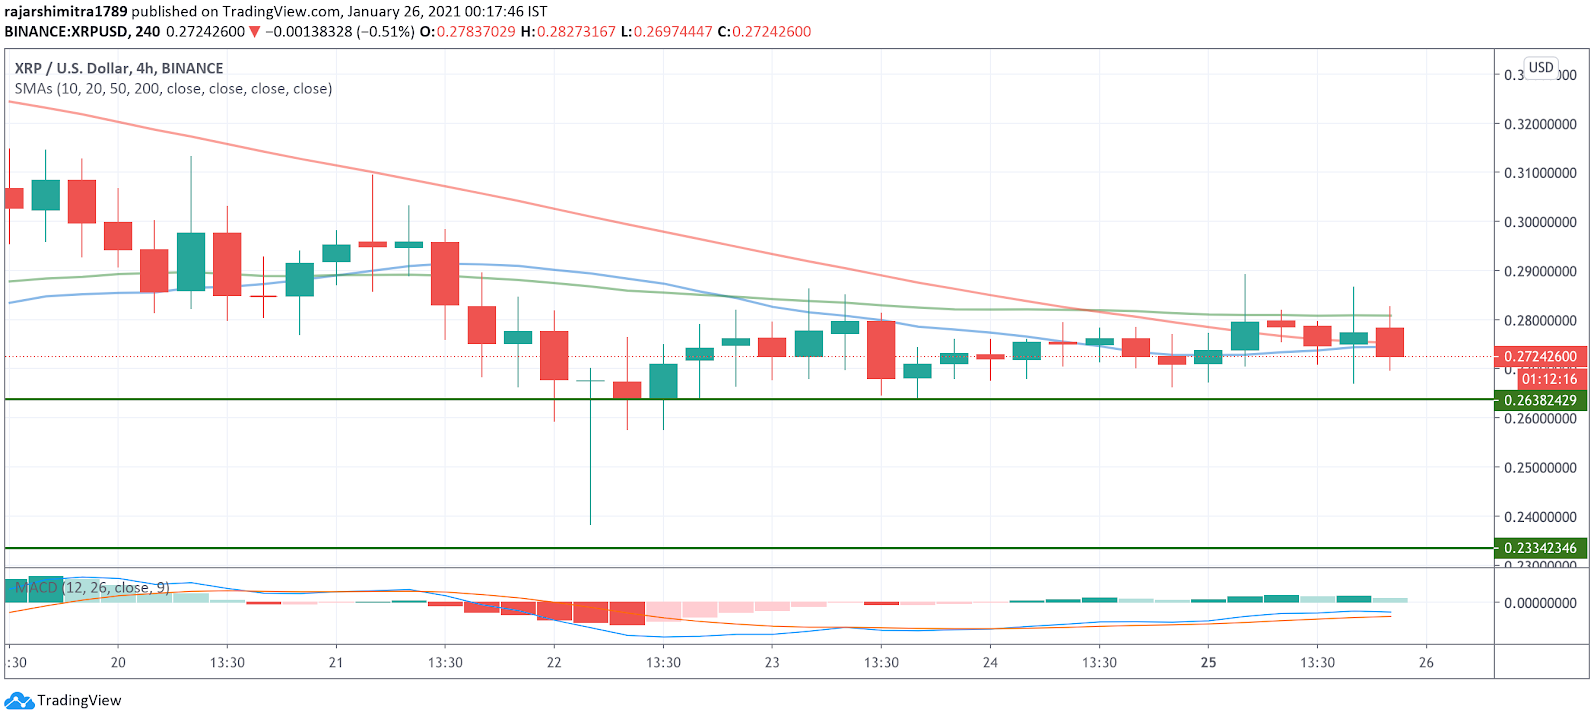 xrp/usd 4-hour chart 012621